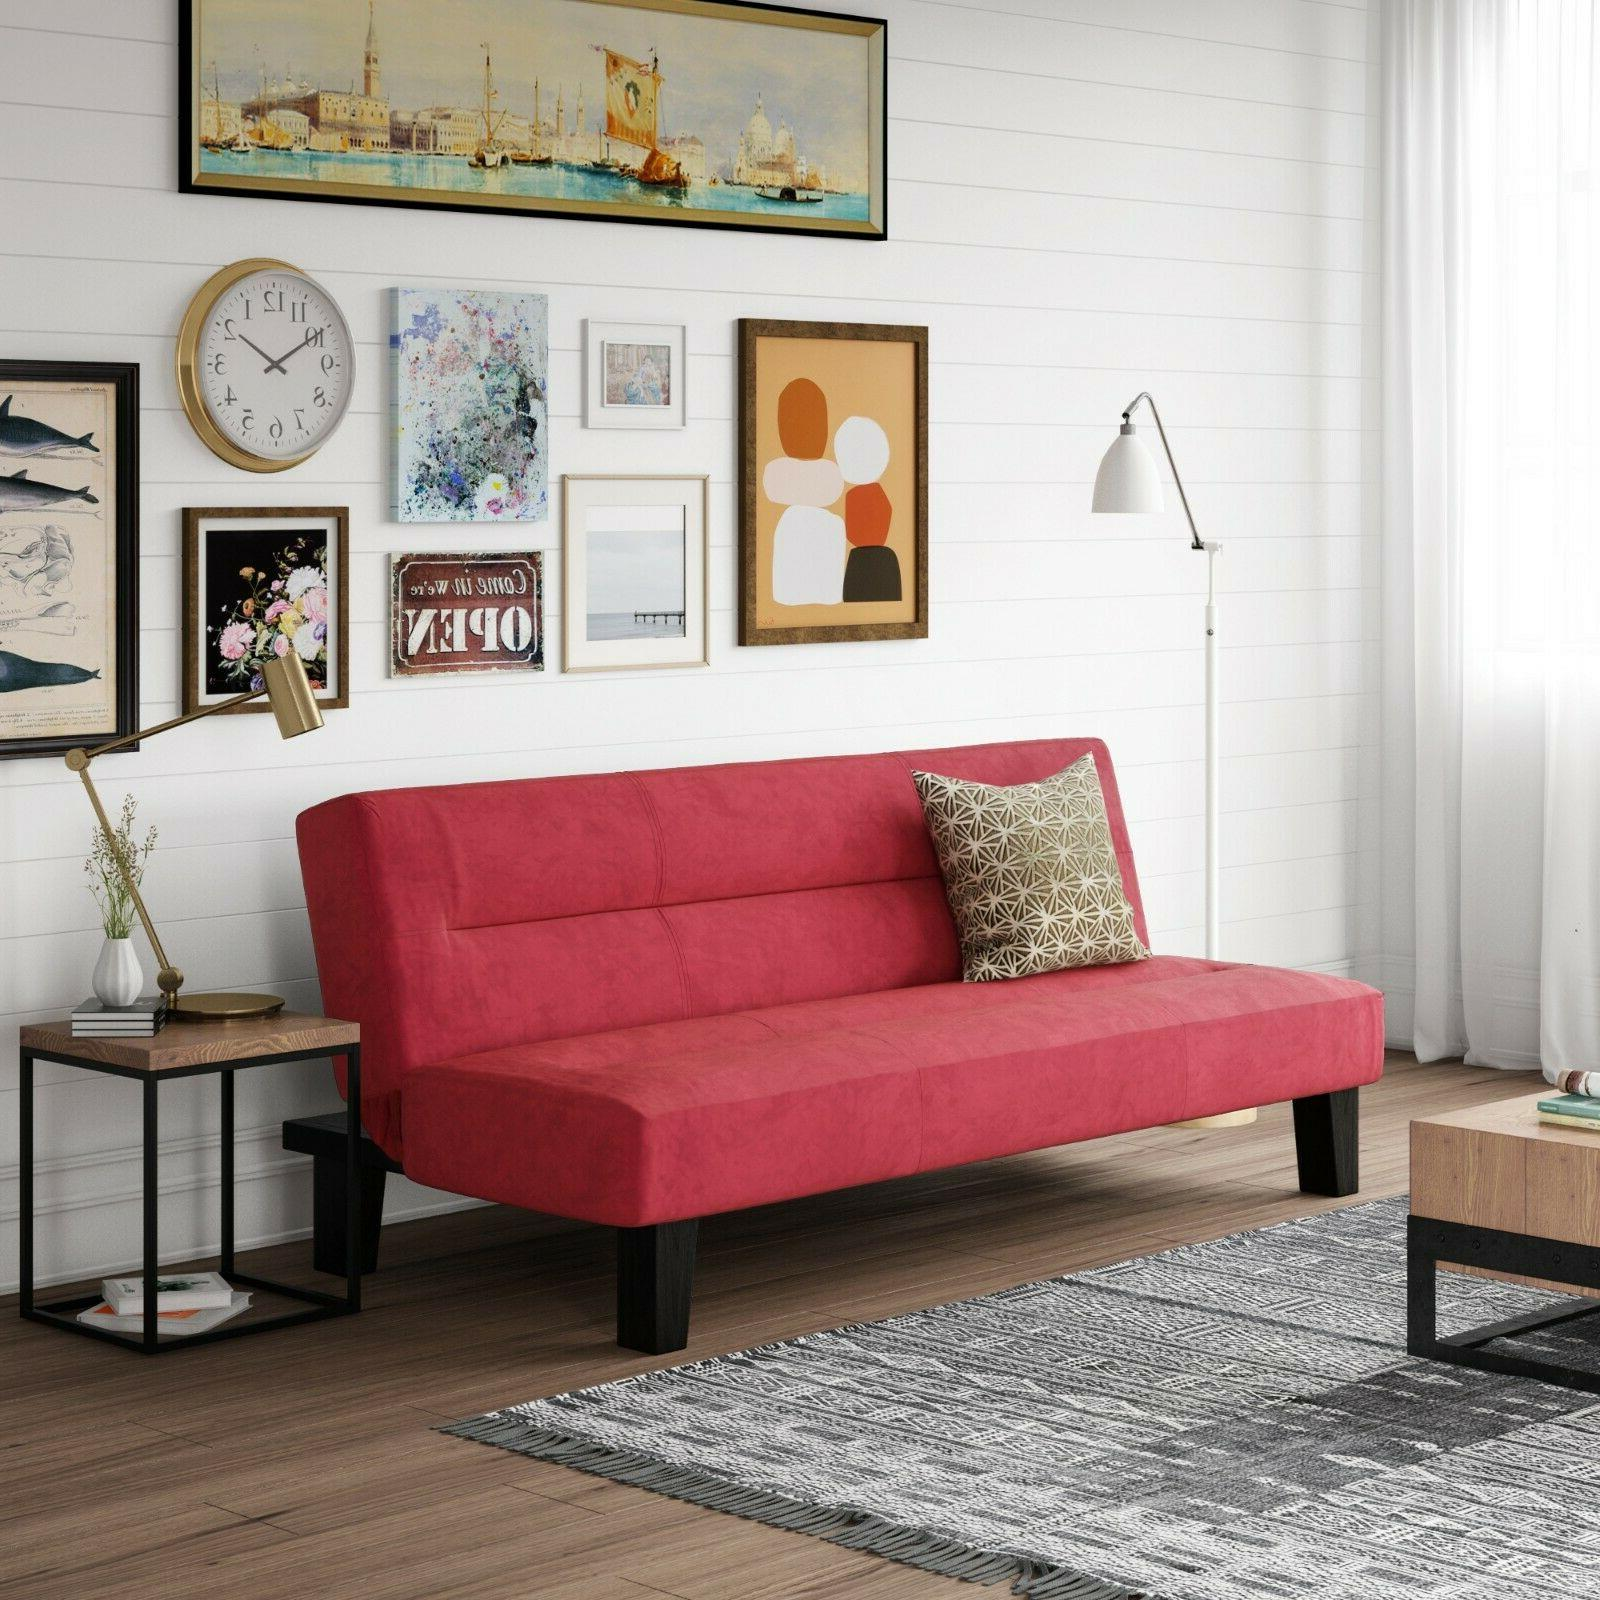 Convertible Red Couch Sleeper Guest Bed Design